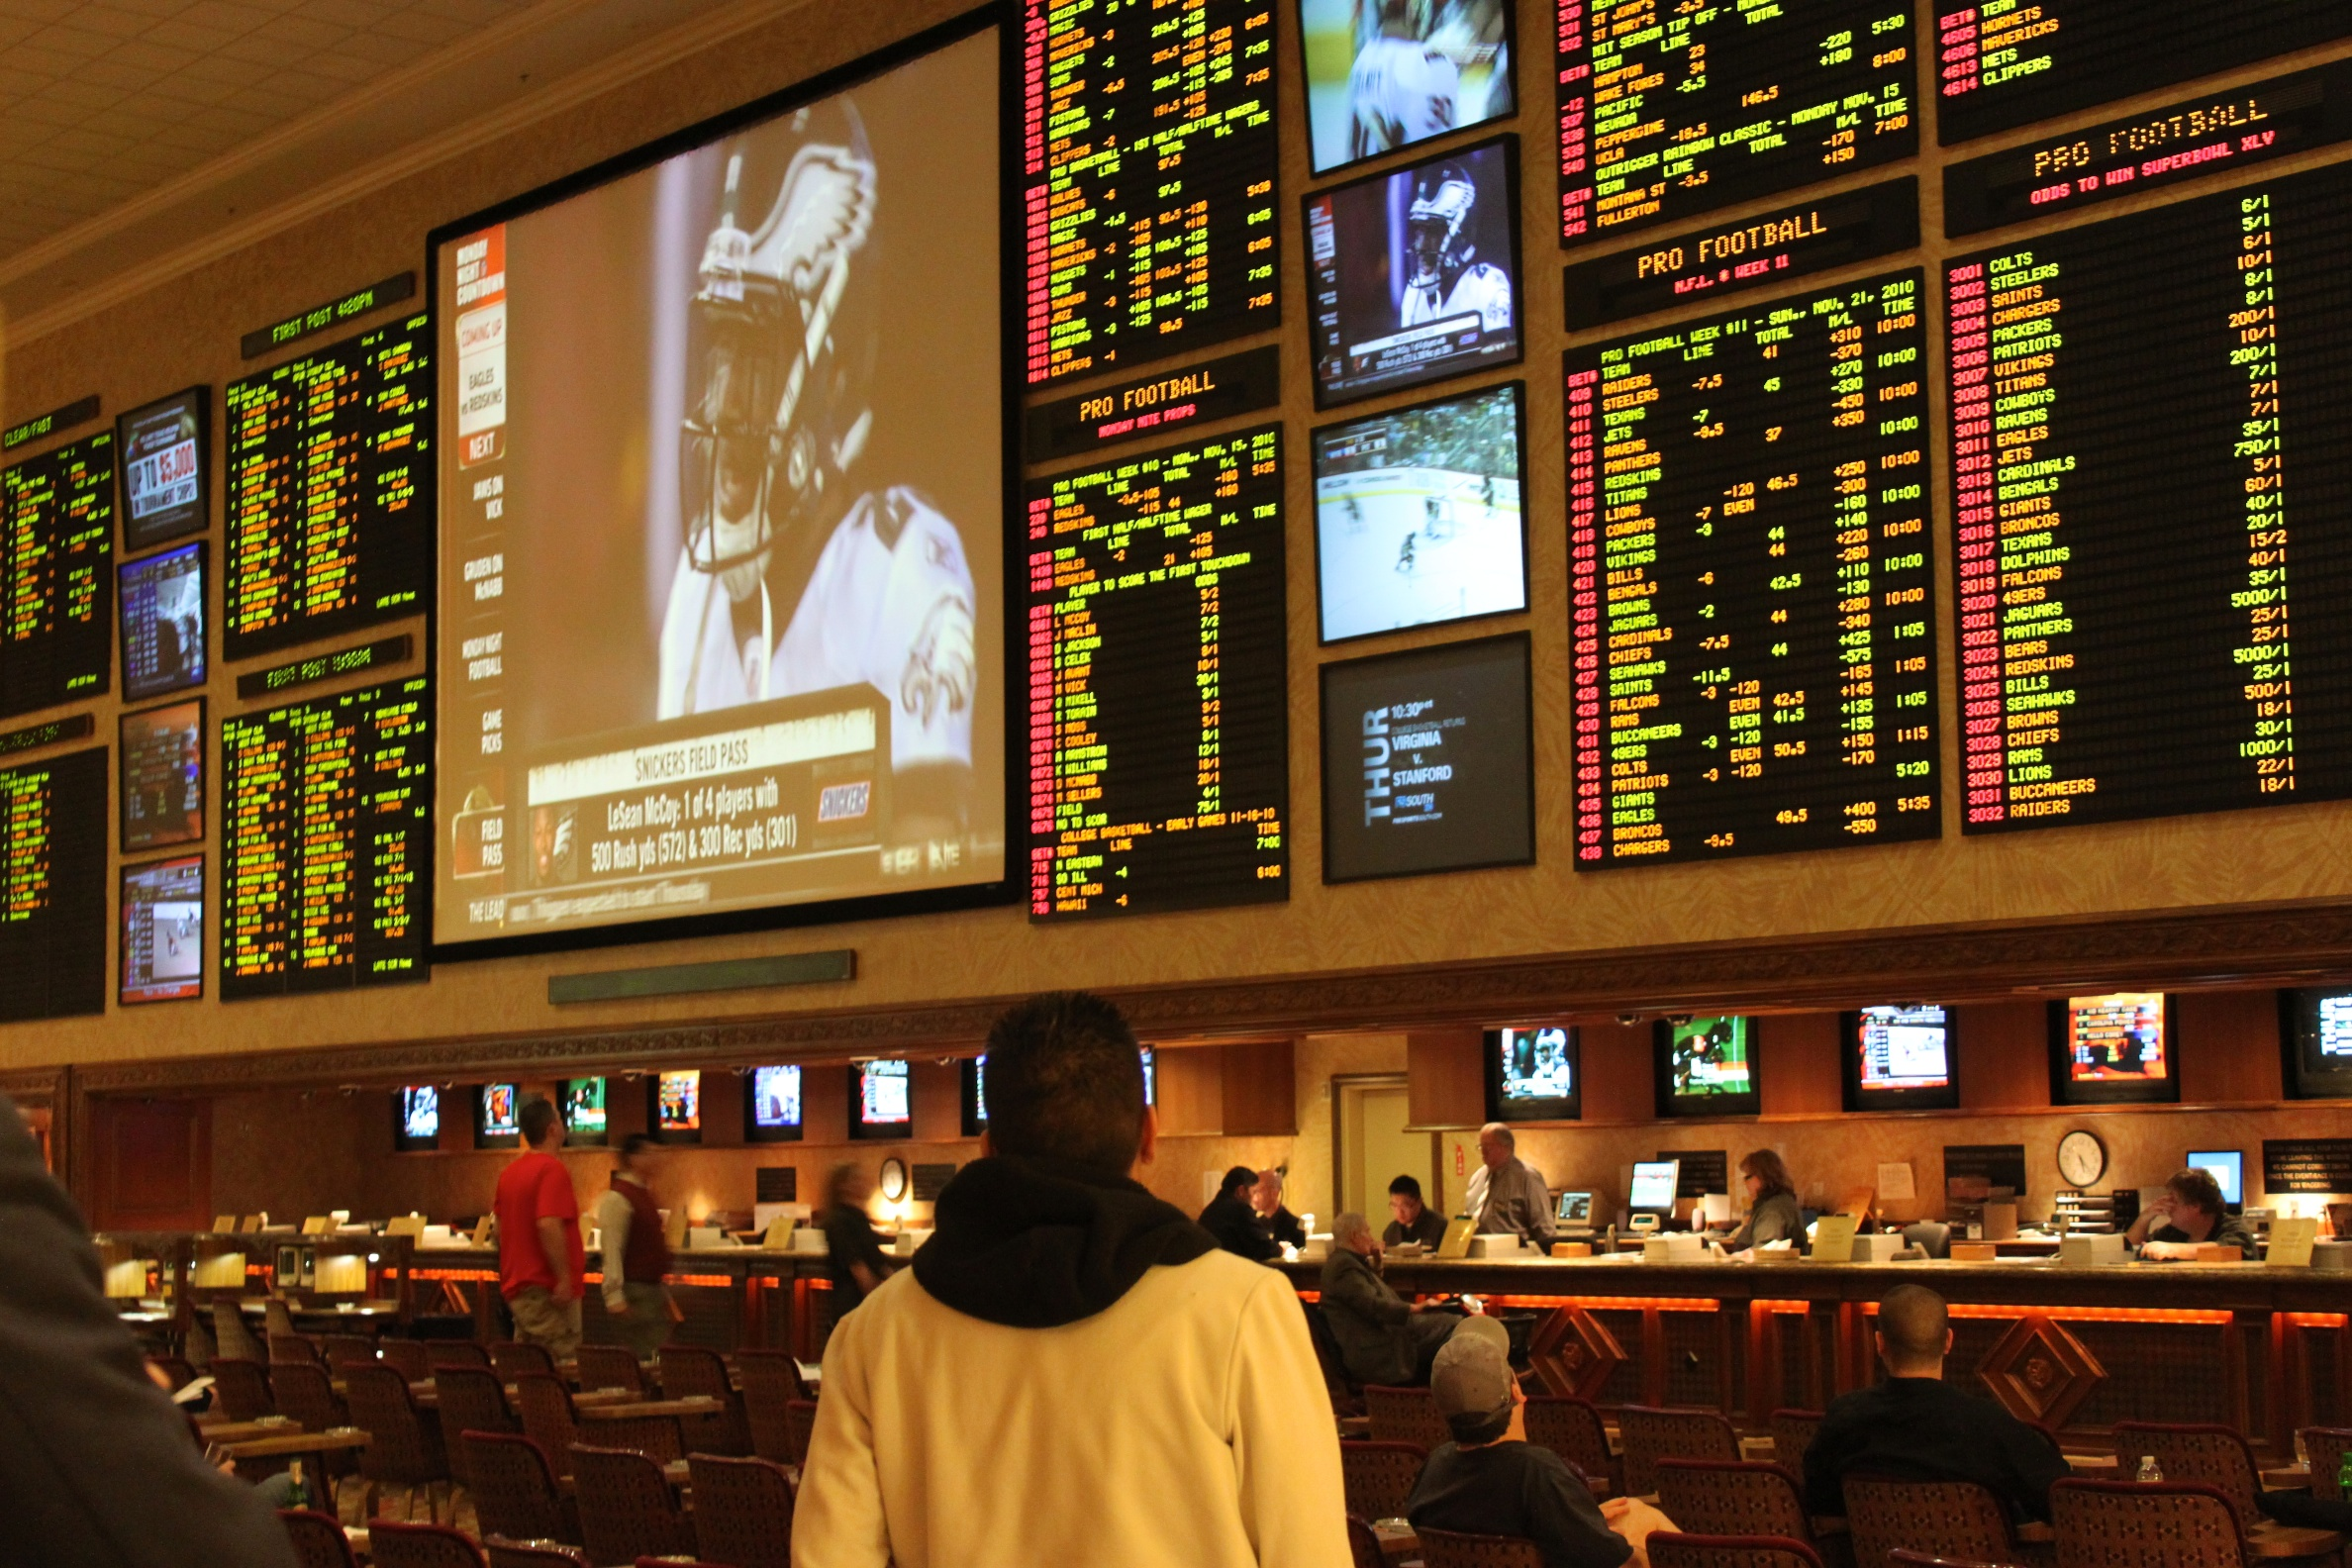 Points To Watch out For In An Online Sportsbook